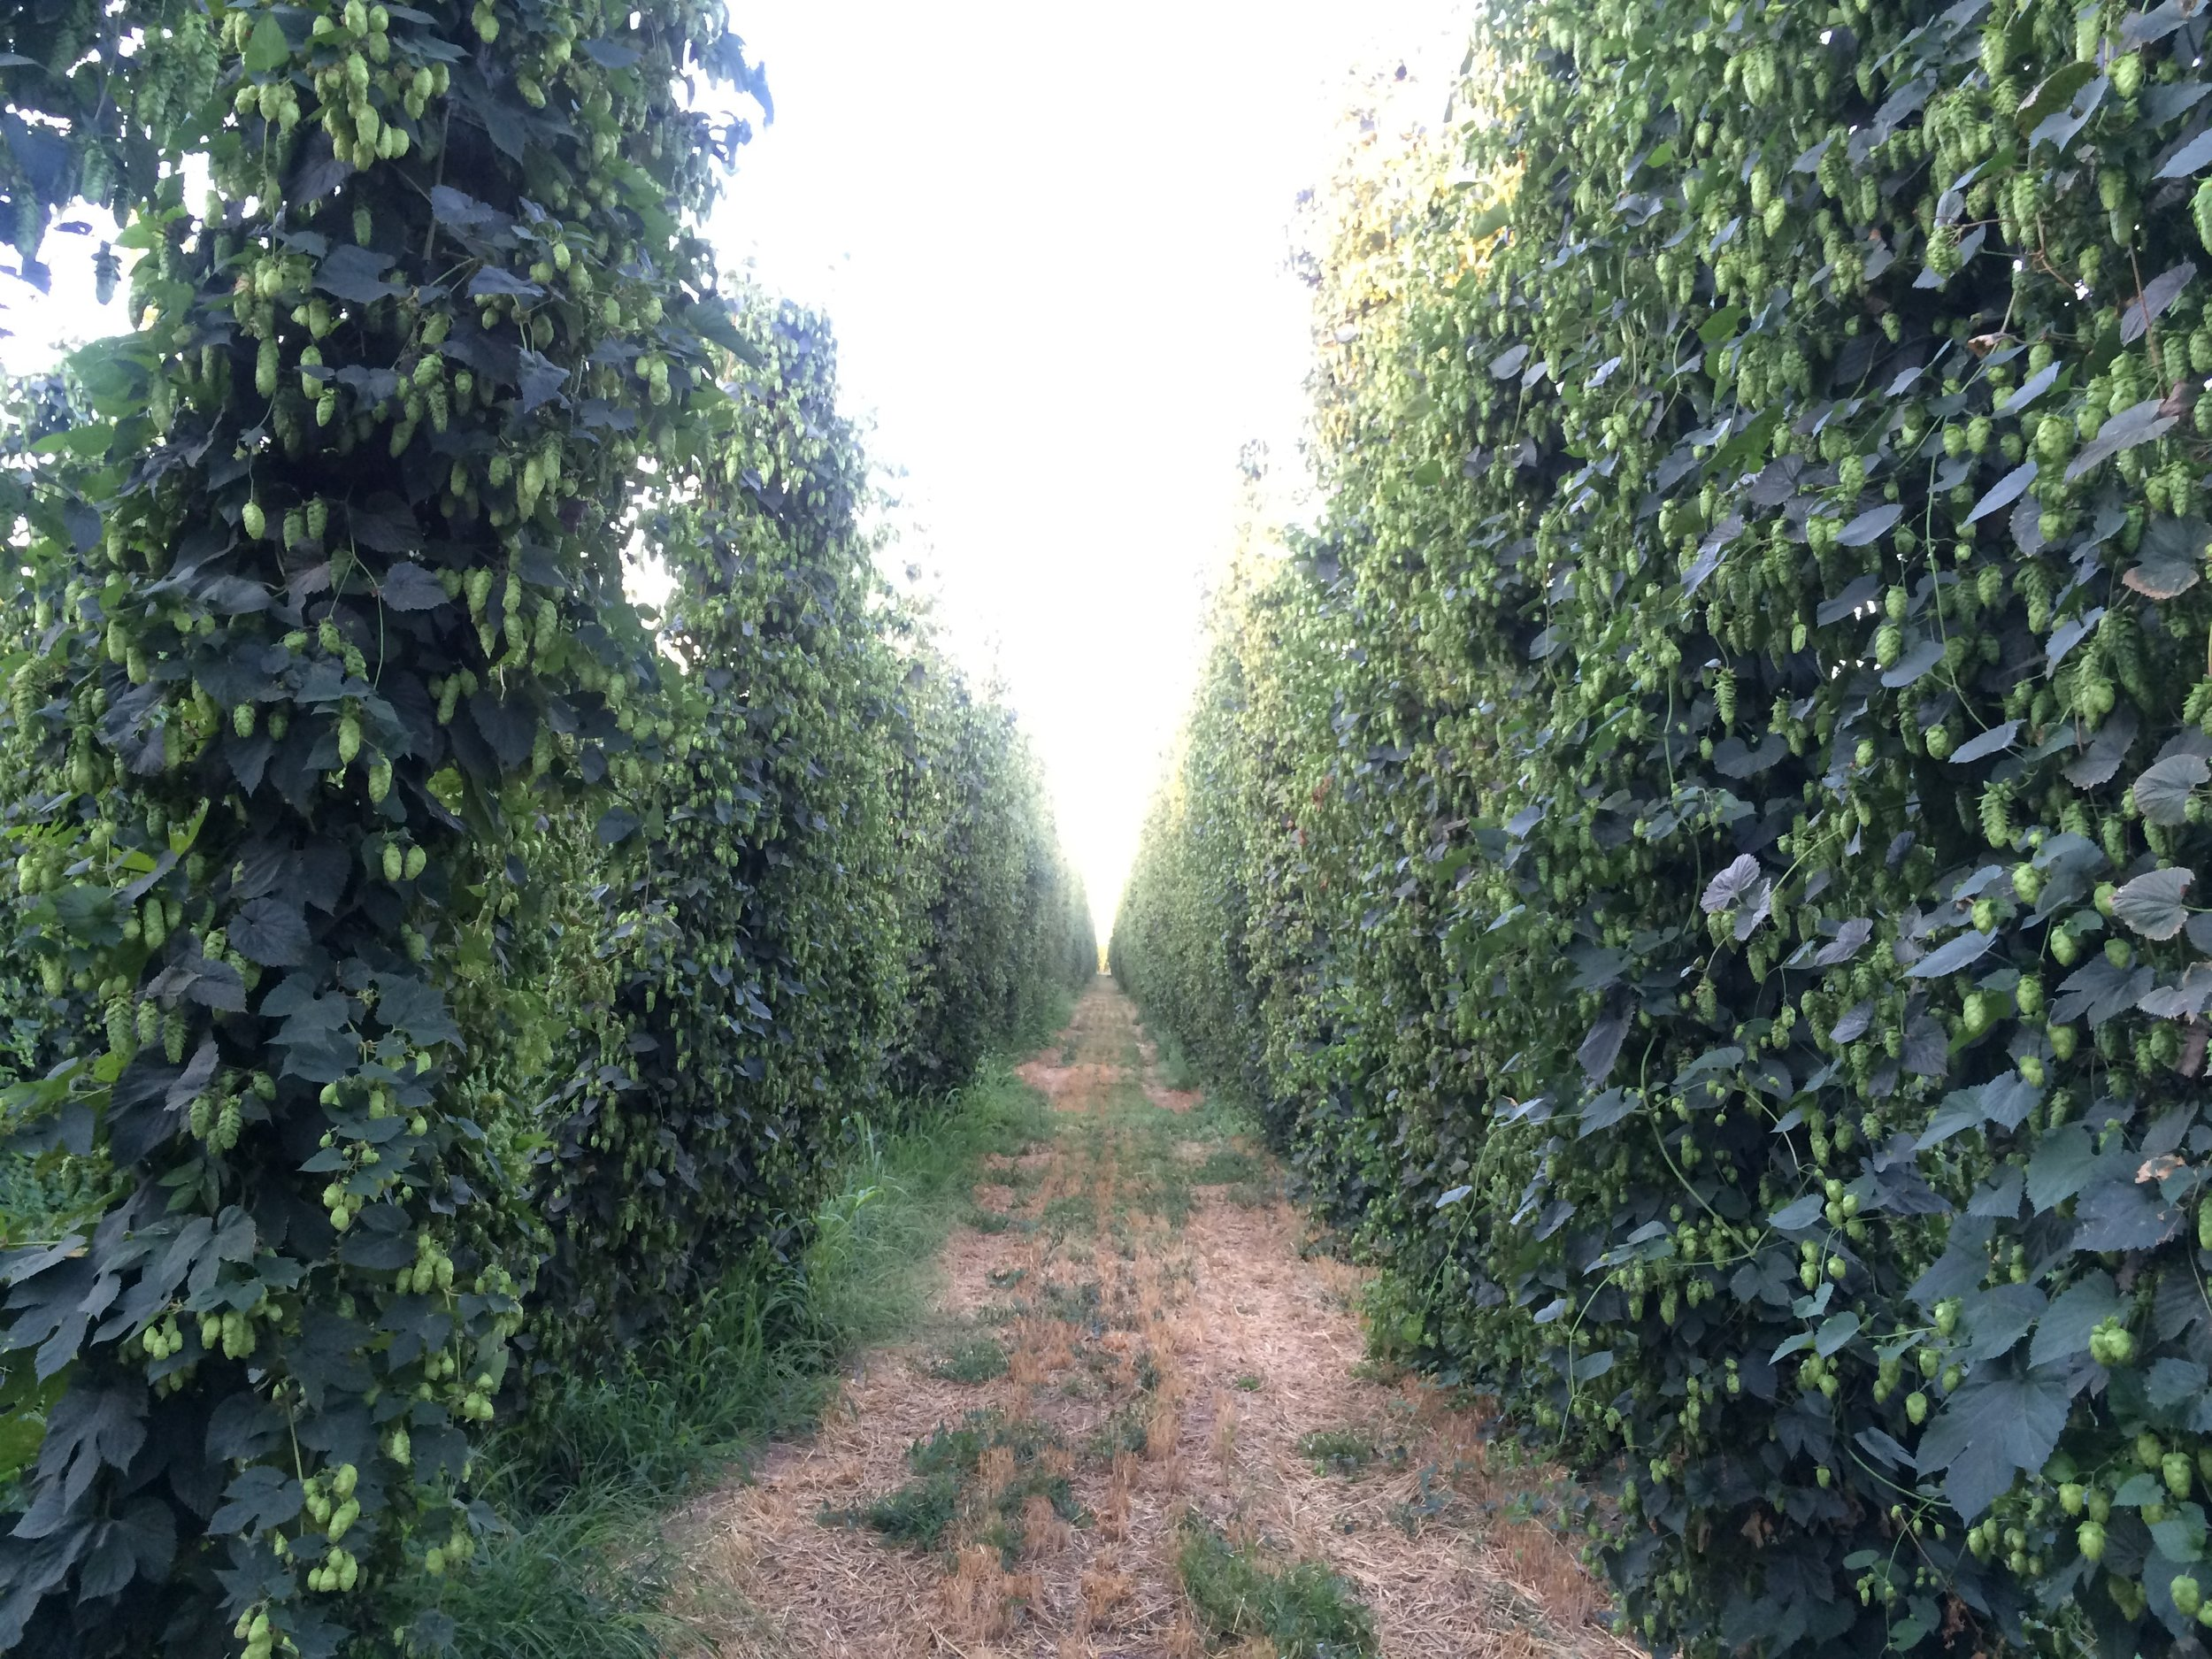 Hops in Yakima Valley grow well thanks to irrigation from the forests of the Cascade Mountains.